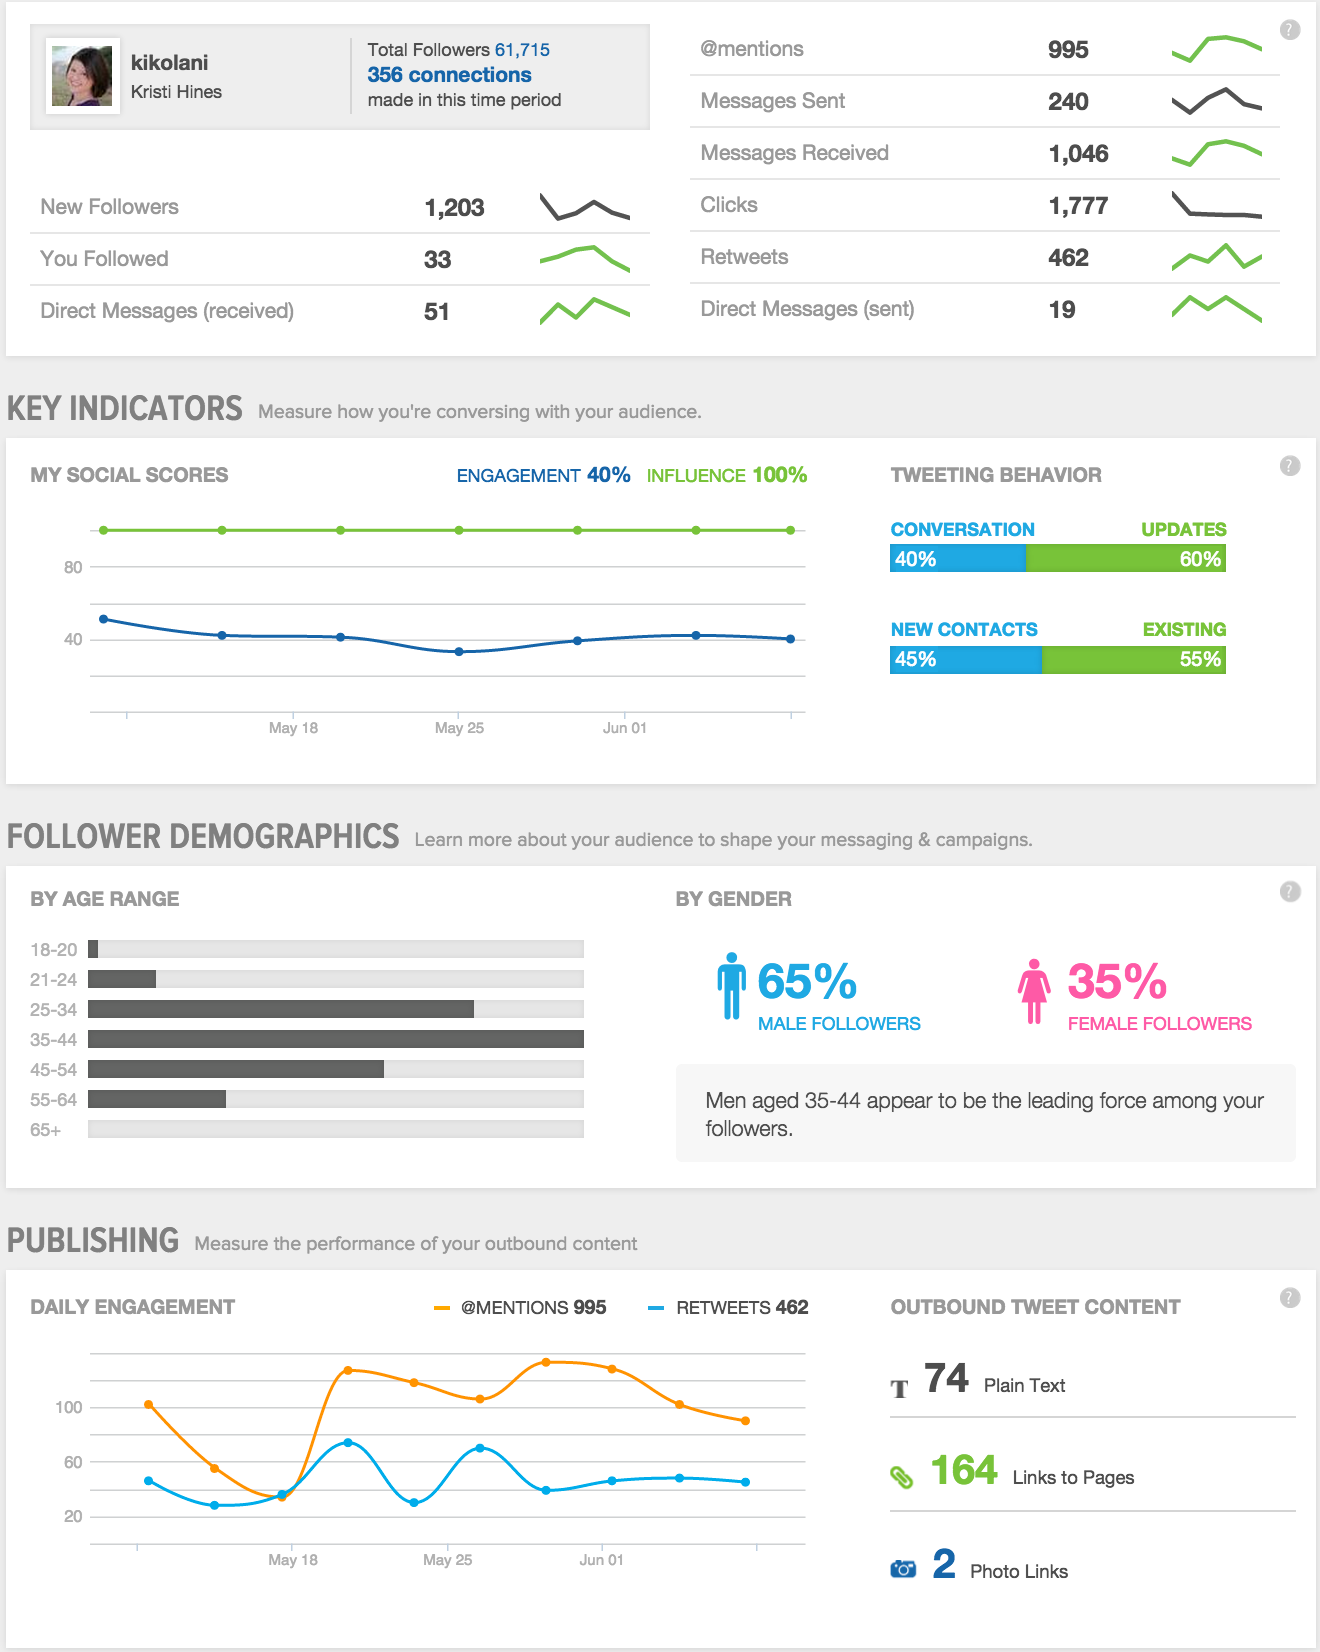 sprout social media metrics screenshot